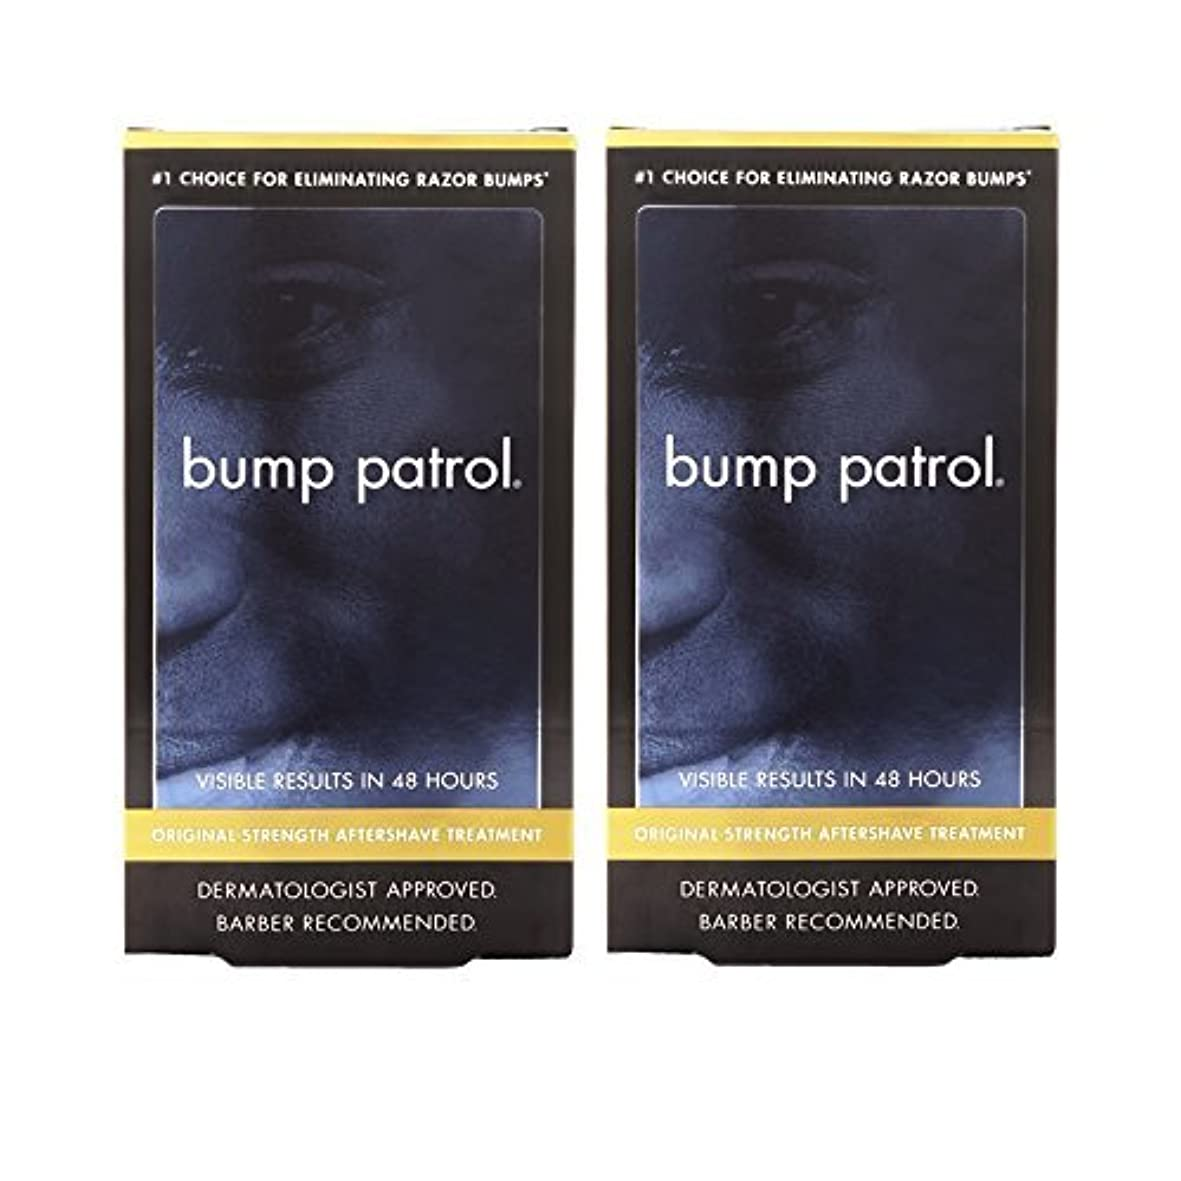 差別する釈義石鹸Bump Patrol Dermatologist Approved Original Strength Aftershave Treatment (2 oz) 2 Pack [並行輸入品]